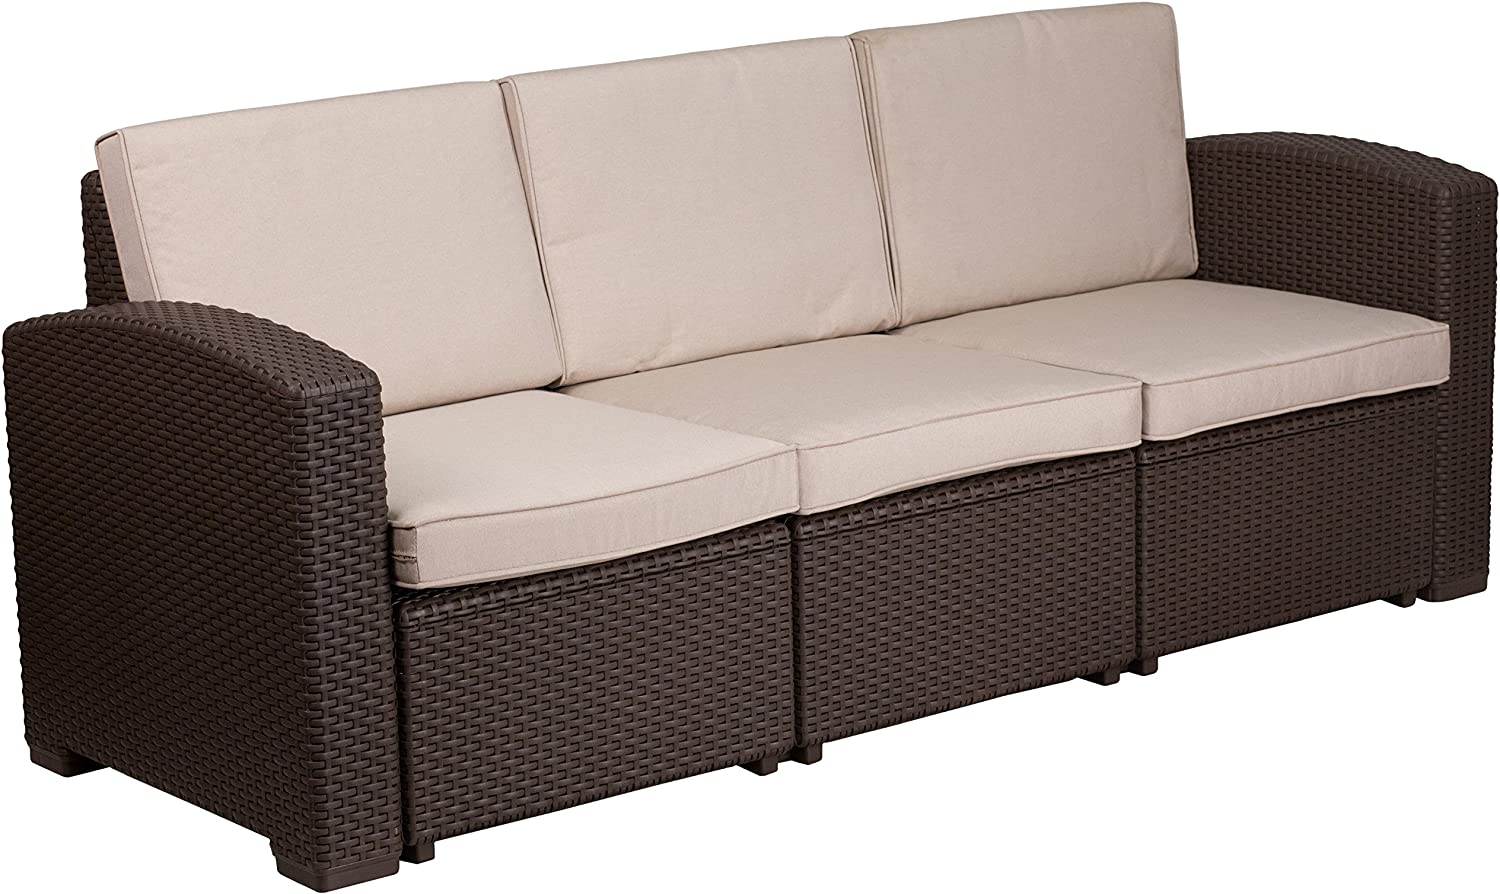 Flash Furniture Chocolate Brown Faux Rattan Sofa with All-Weather Beige Cushions